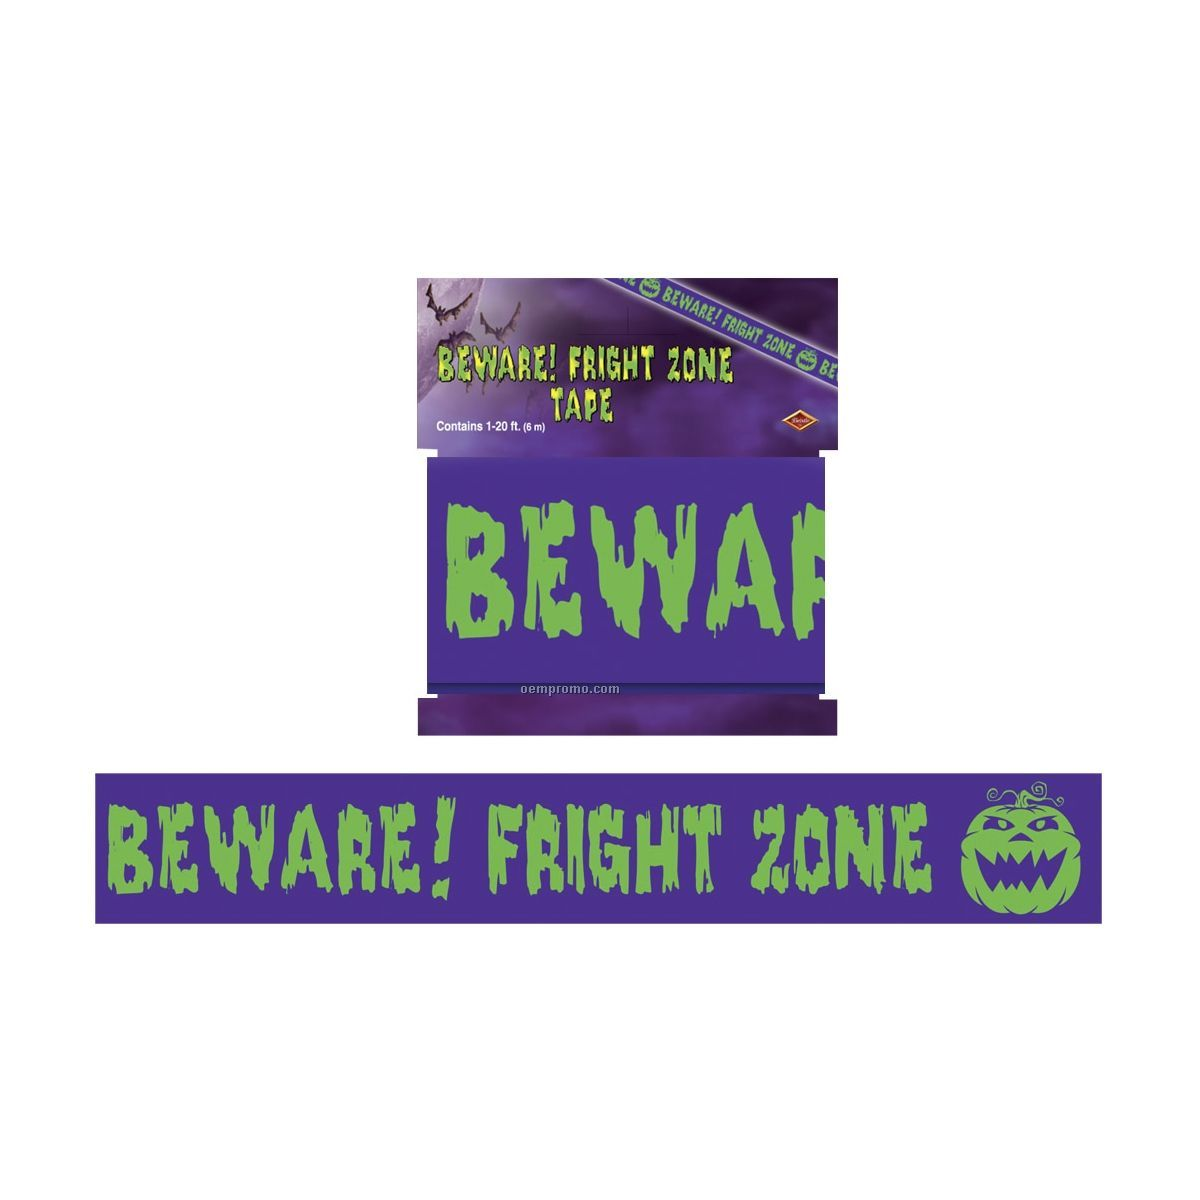 Fright dome discount coupons